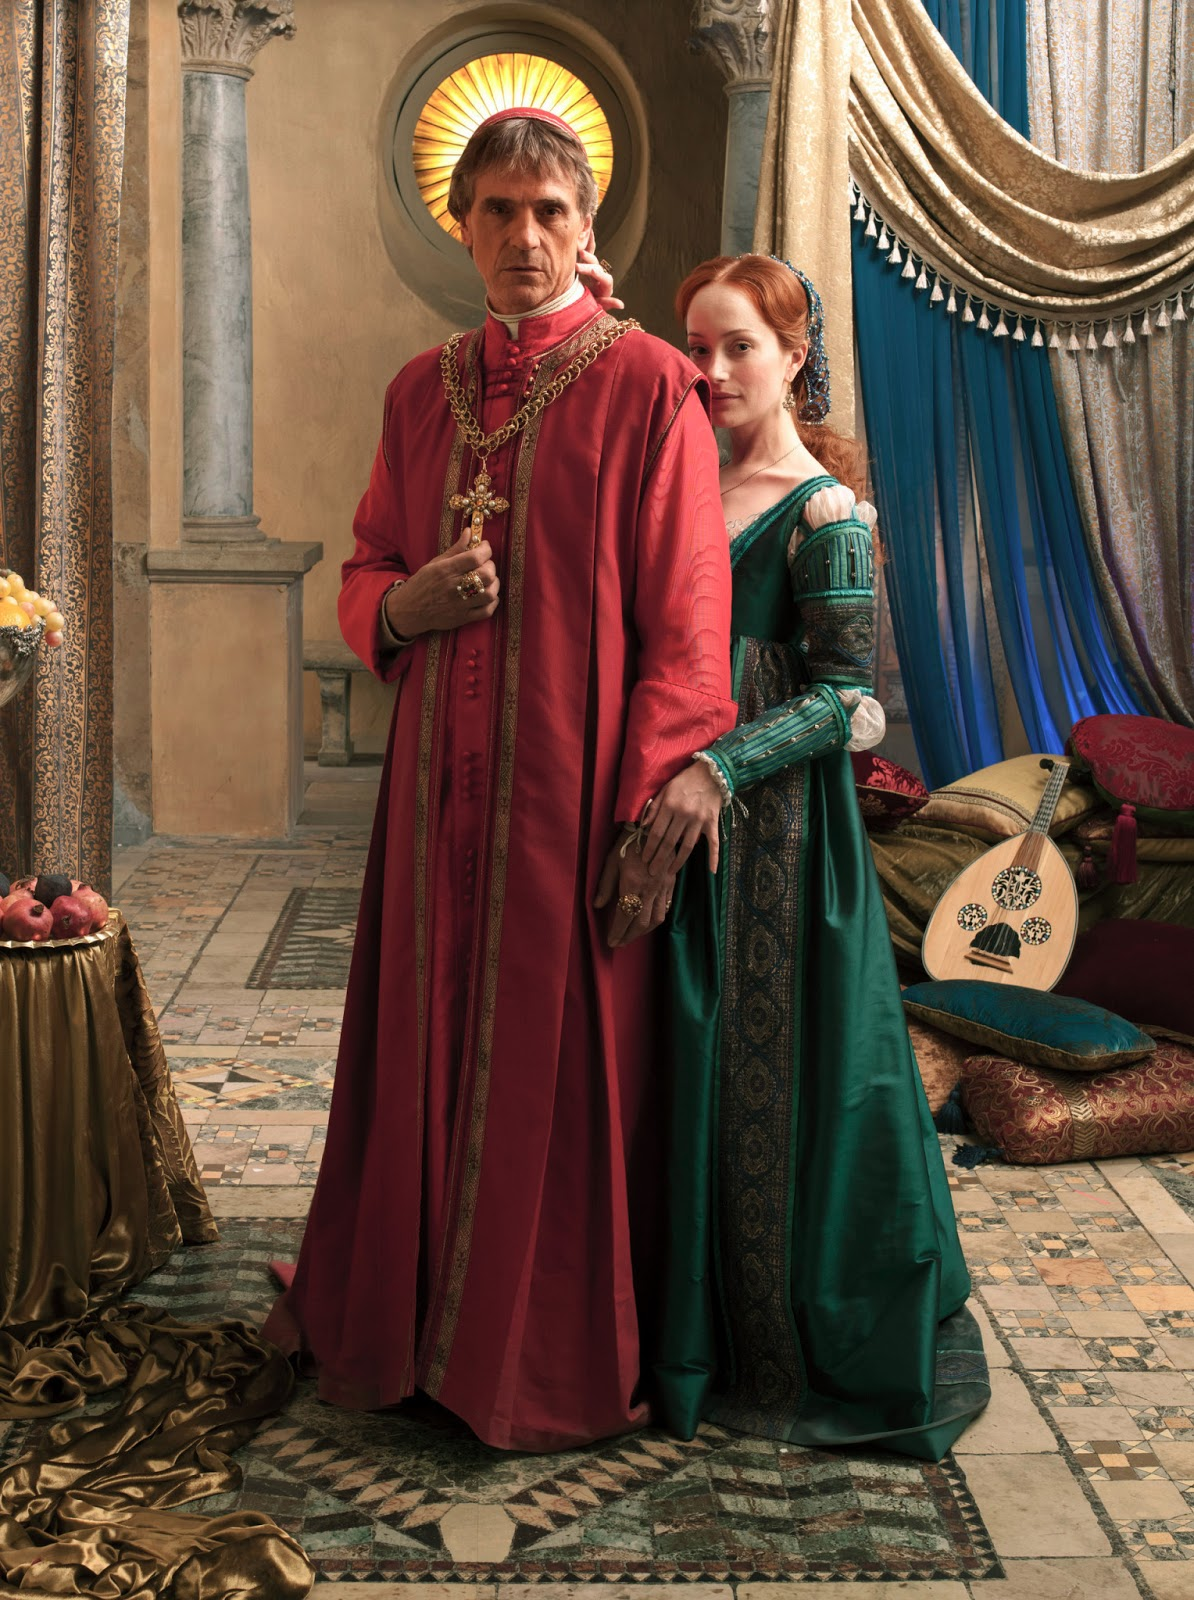 Jeremy Irons as Pope Alexander VI and Lotte Verbeek as Giulia Farnese